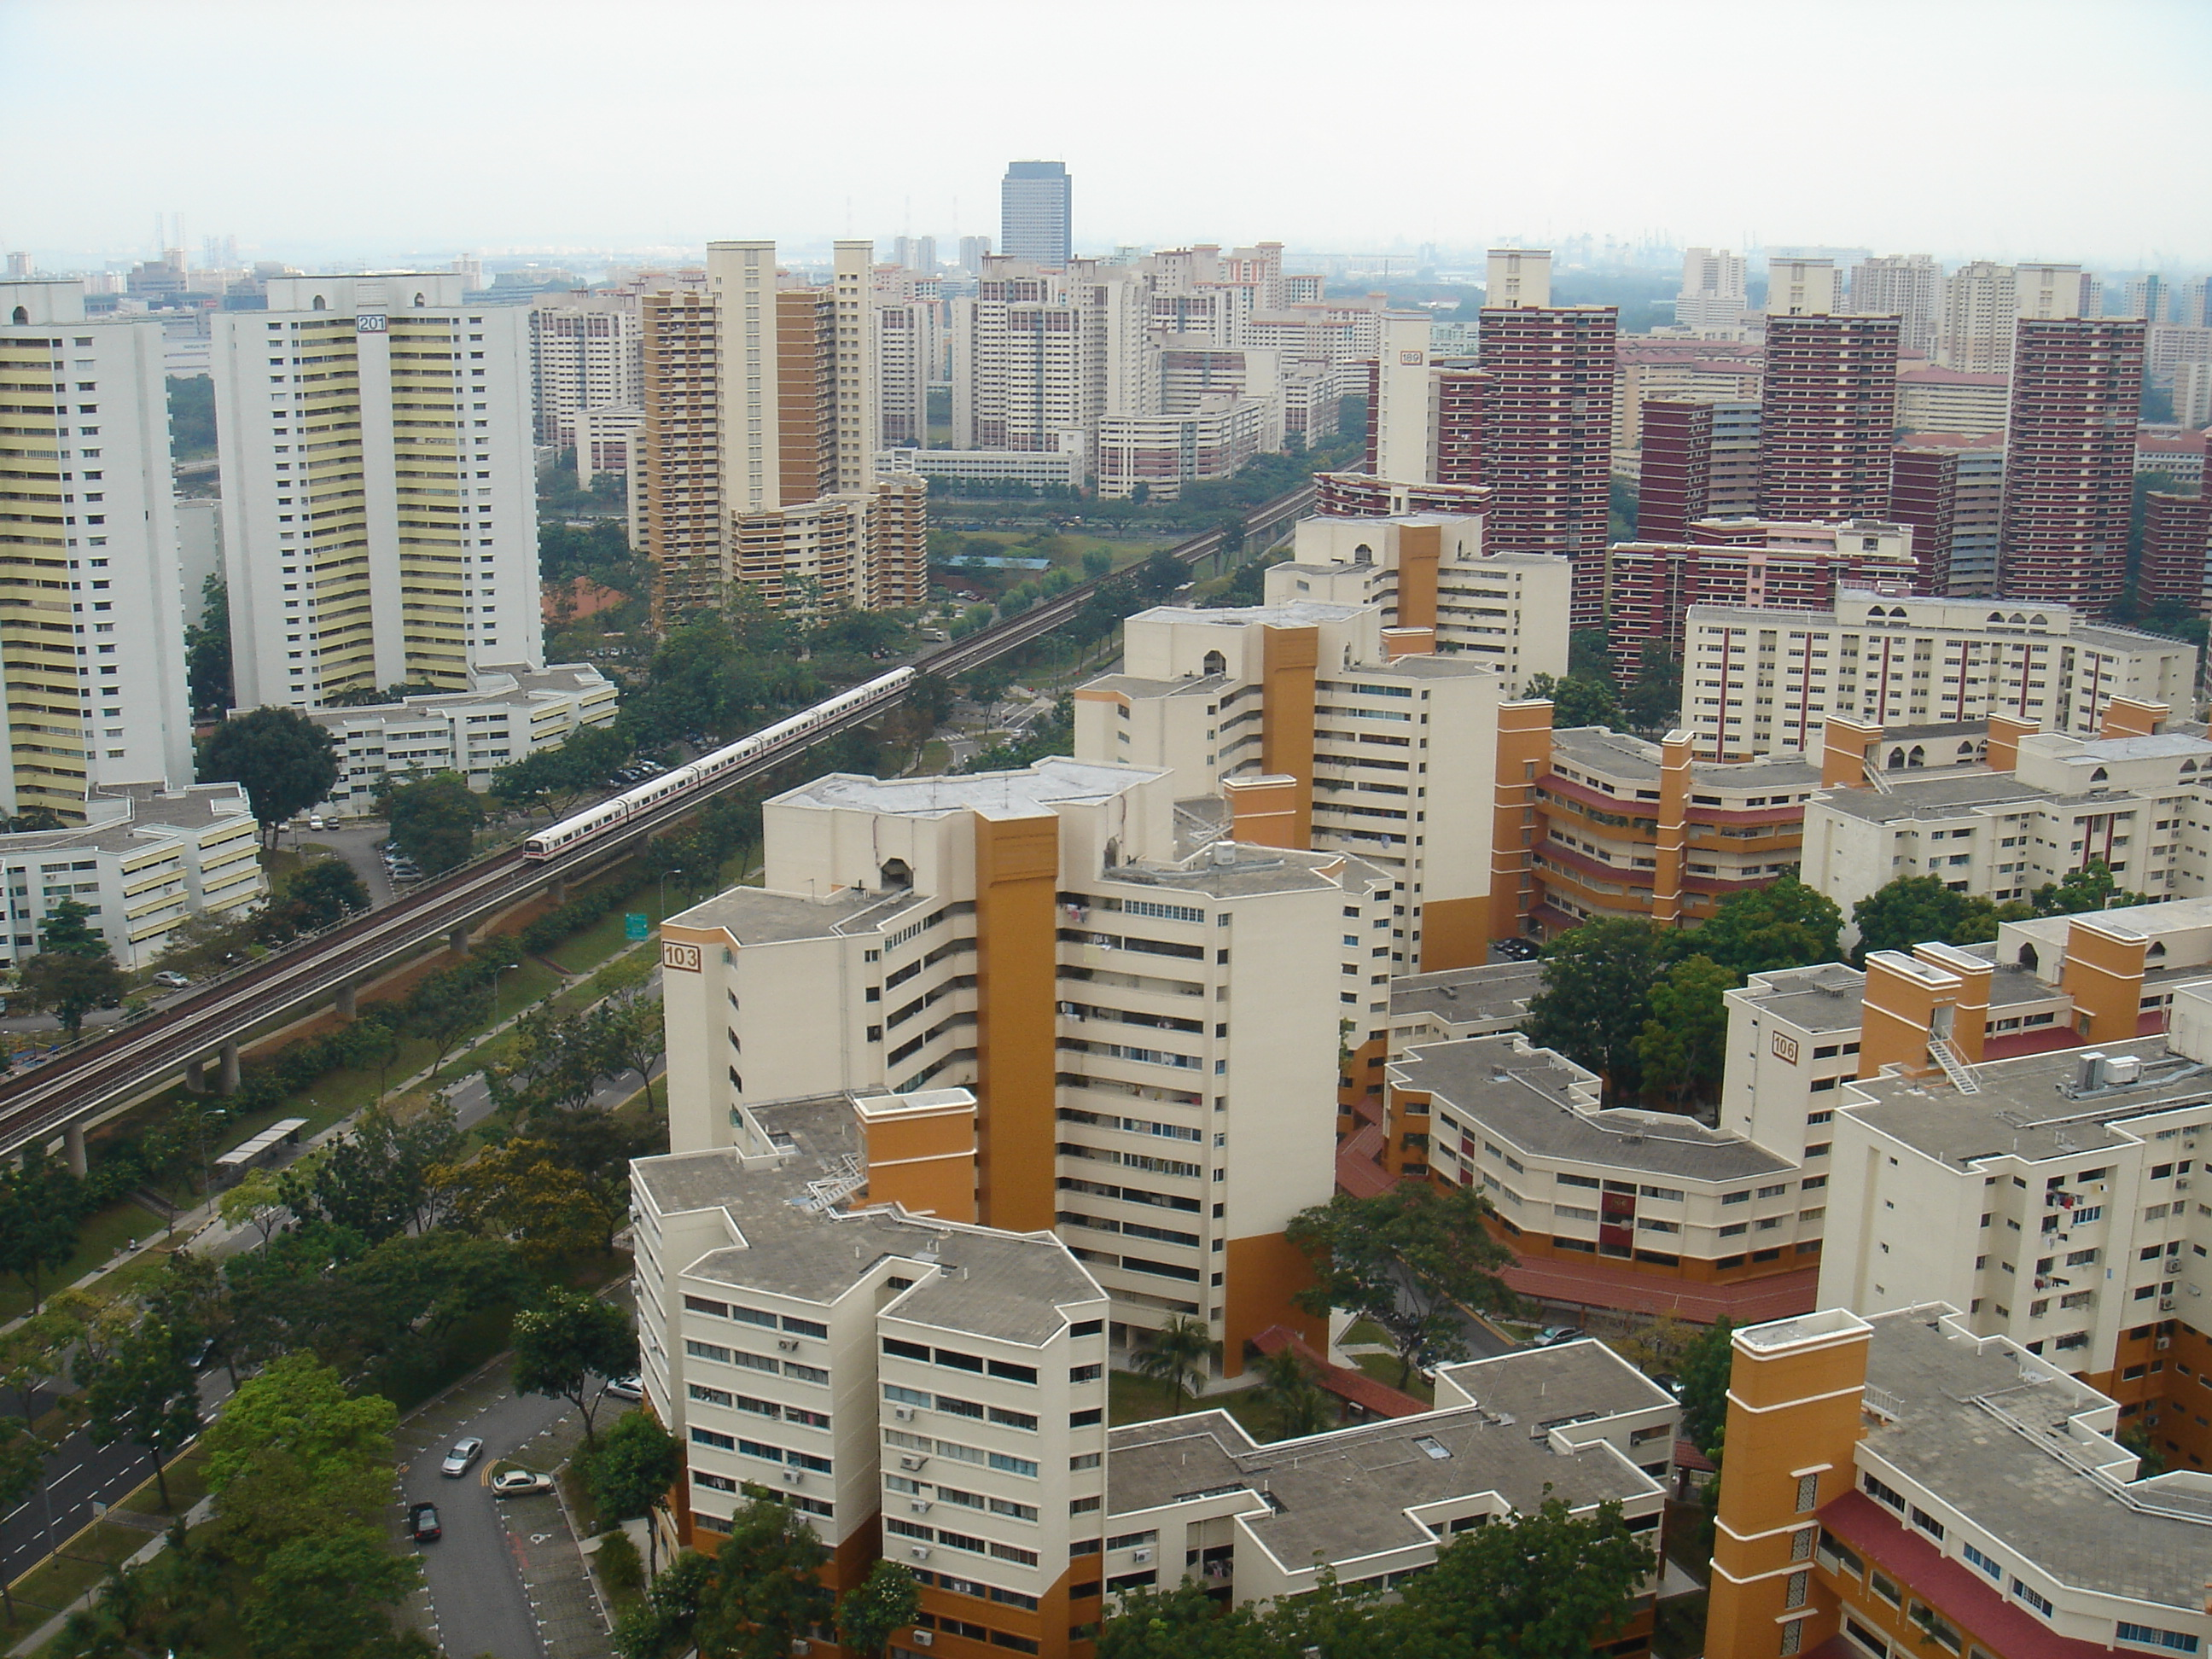 The sudden rise in home sales during last month was attributed to panic buyers who rushed to snap properties the night before new cooling measures took effect on July 6. Photo courtesy: Wikimedia